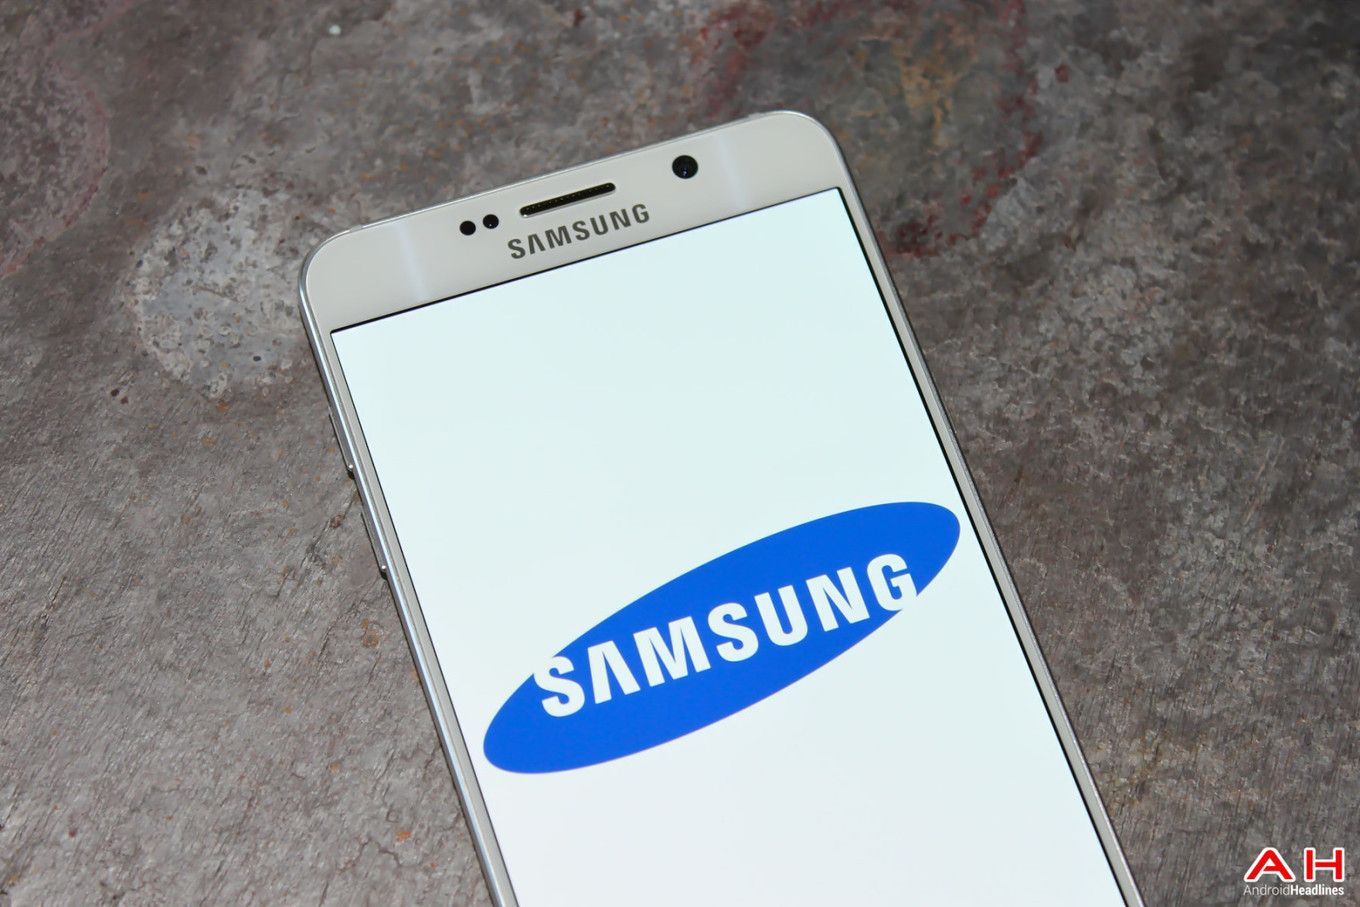 Samsung Introduce Brand New Version of Smart View App